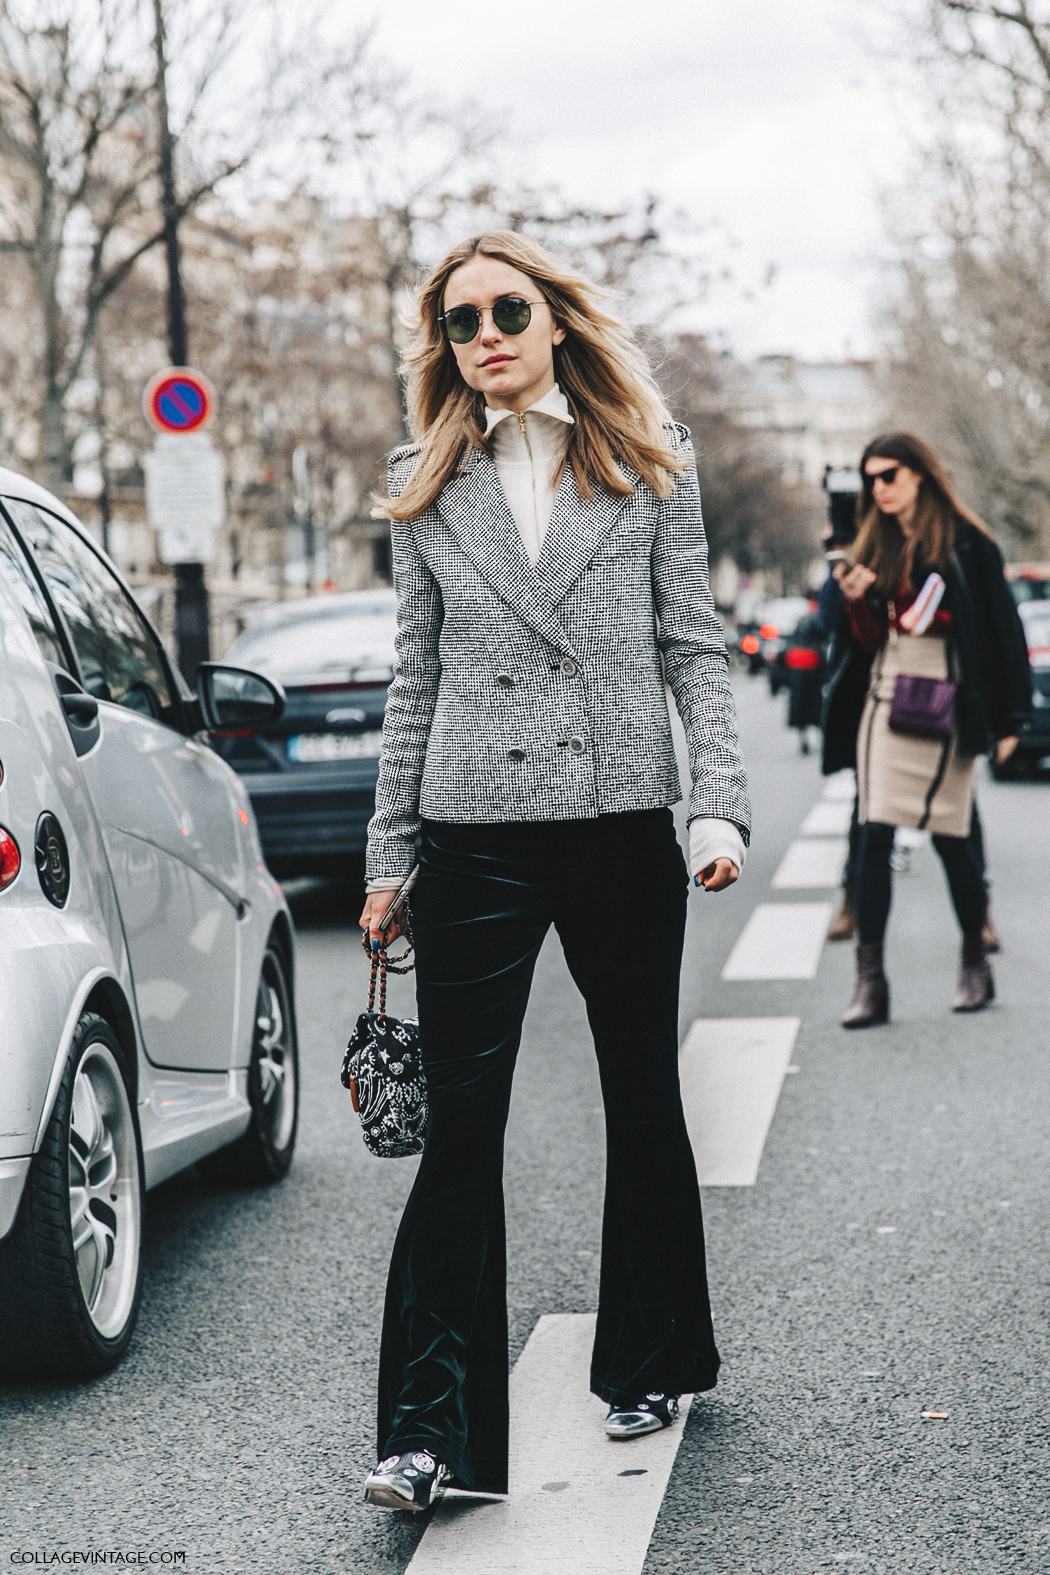 PFW-Paris_Fashion_Week_Fall_2016-Street_Style-Collage_Vintage-Pernille_Teisbaek-2